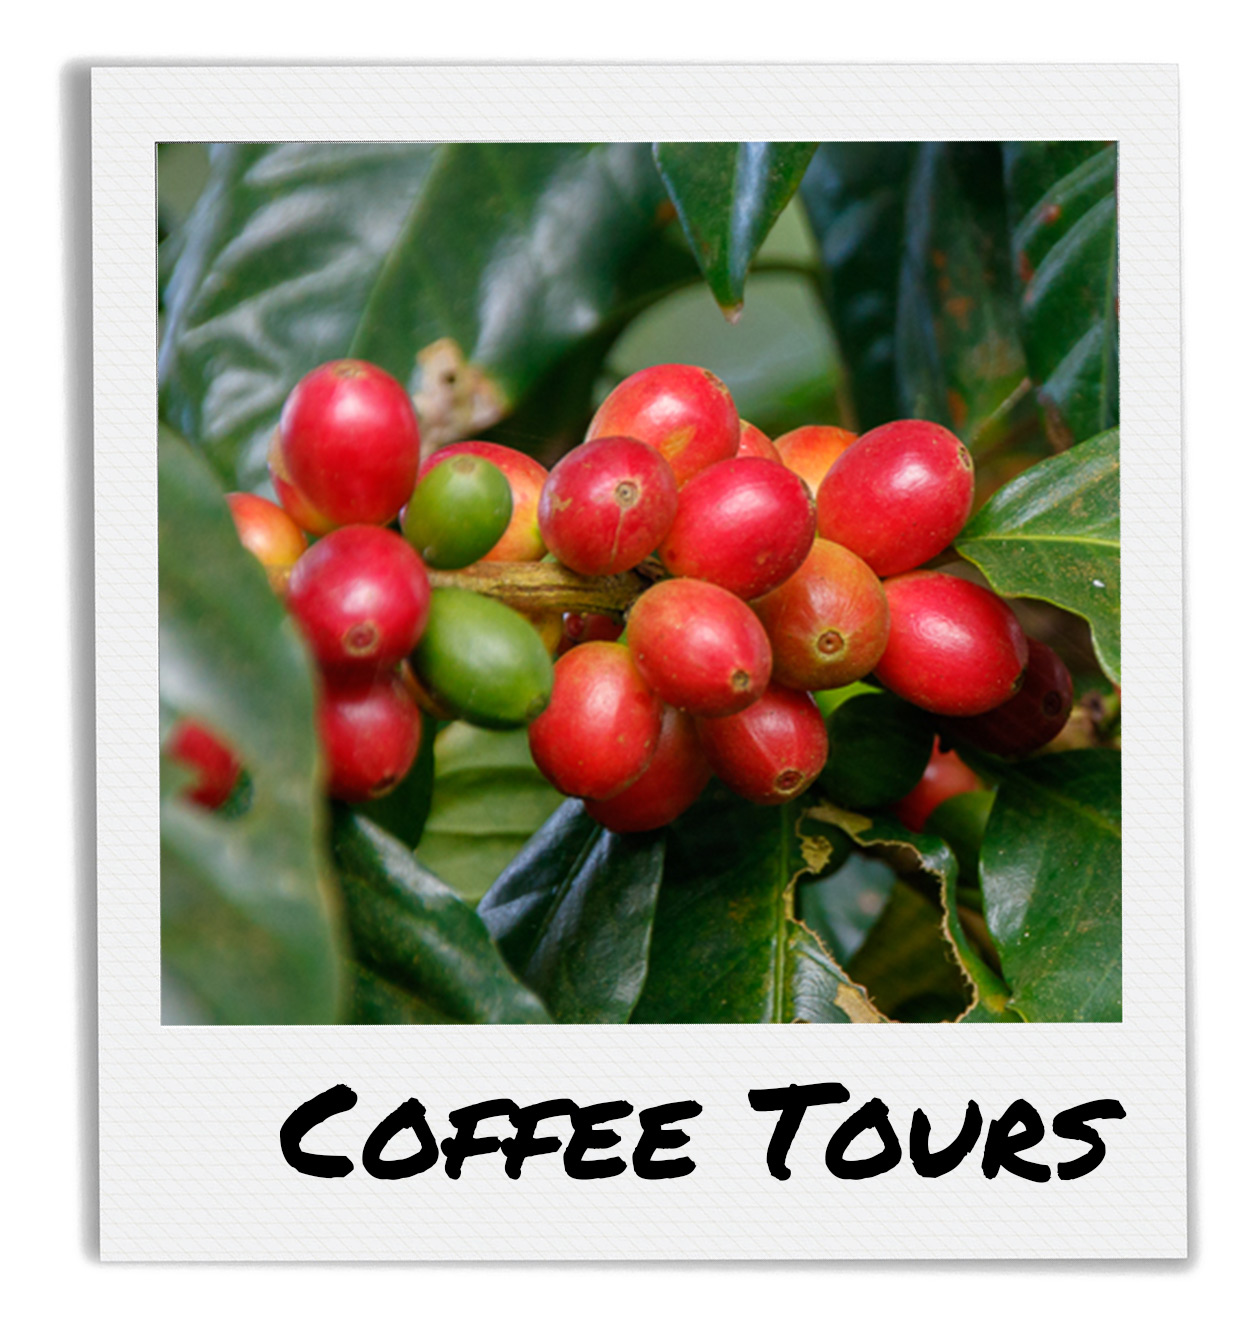 Finca El Peten Organic Coffee Tour